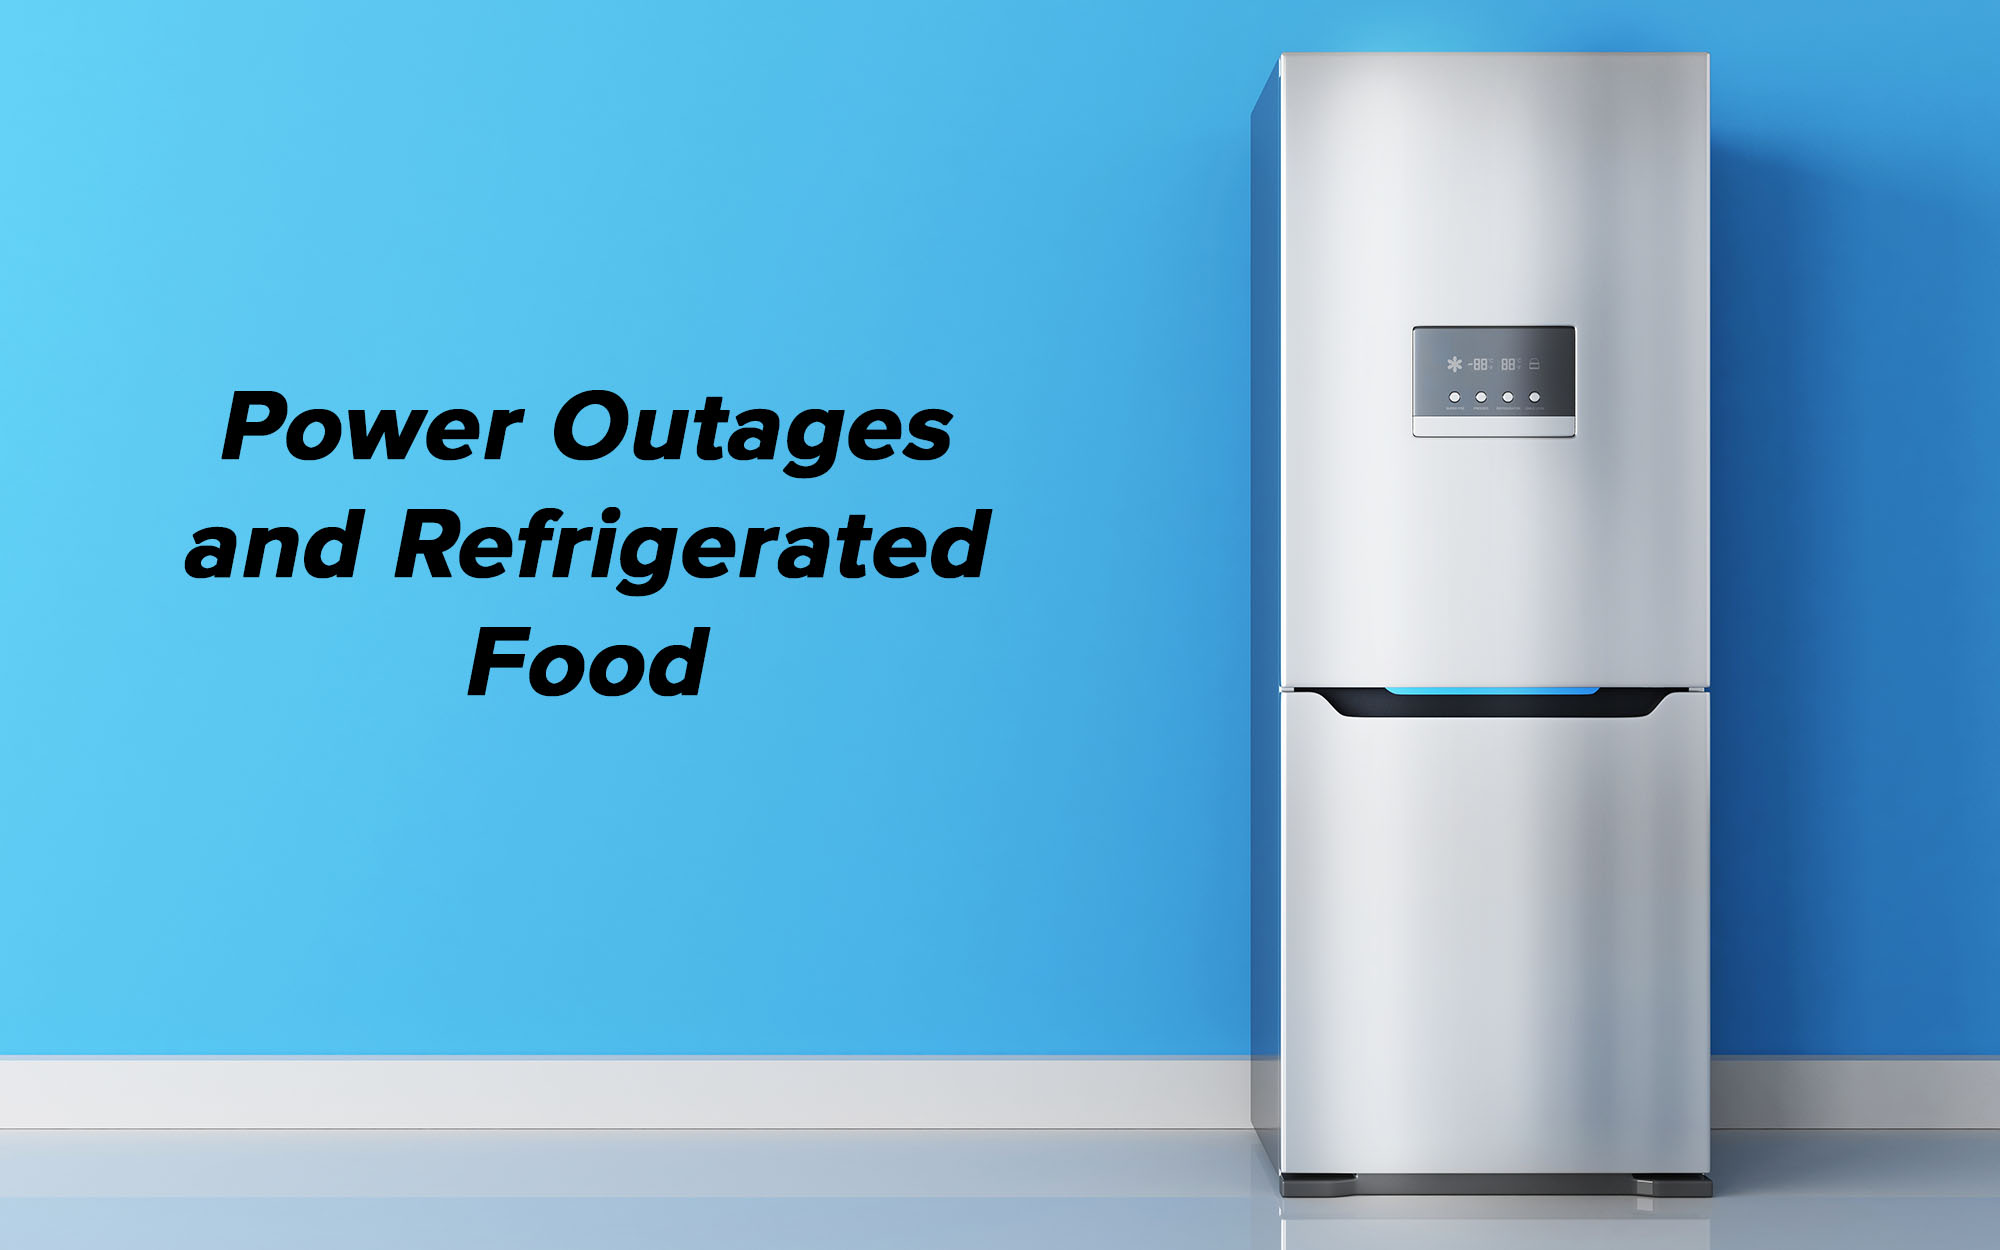 Refrigerated Food Fridge Power Outage Saving Groceries